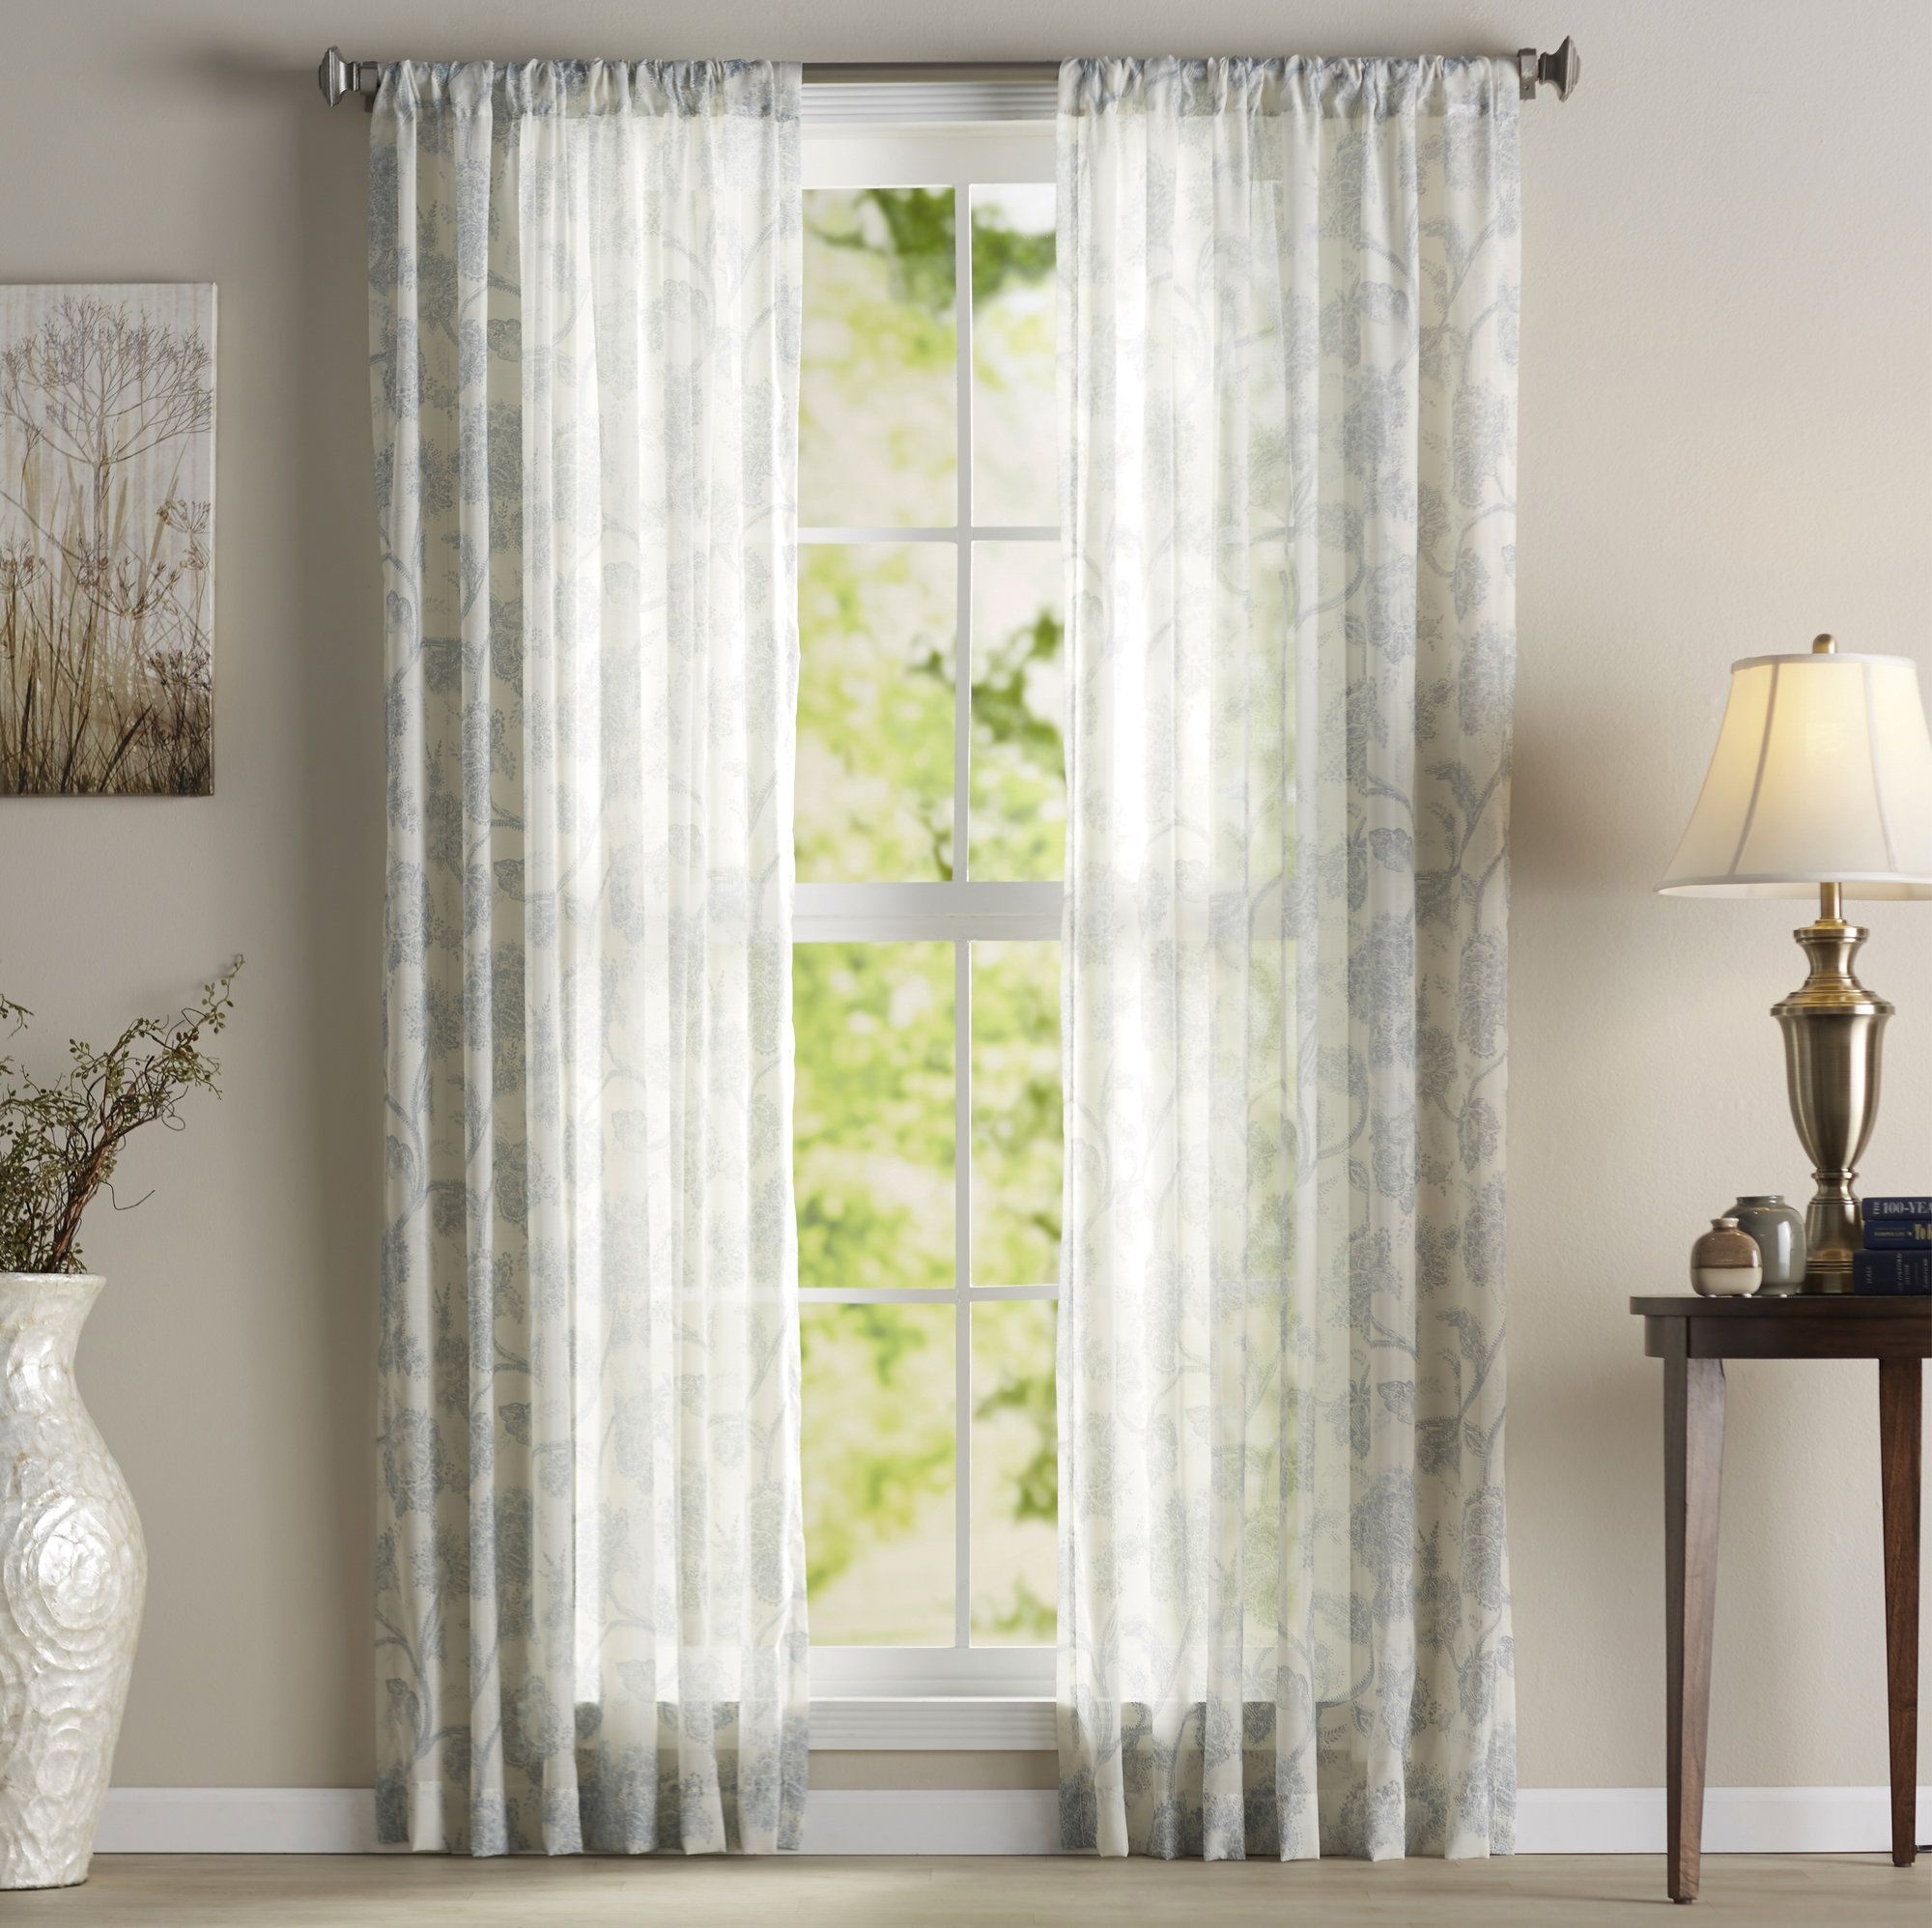 drape was pottery duchess knew i long wide really how decorating barn curtain white very and the rod windows problem some needed add img bedroom for a peyton that is painted color to after of make expanse this drapes